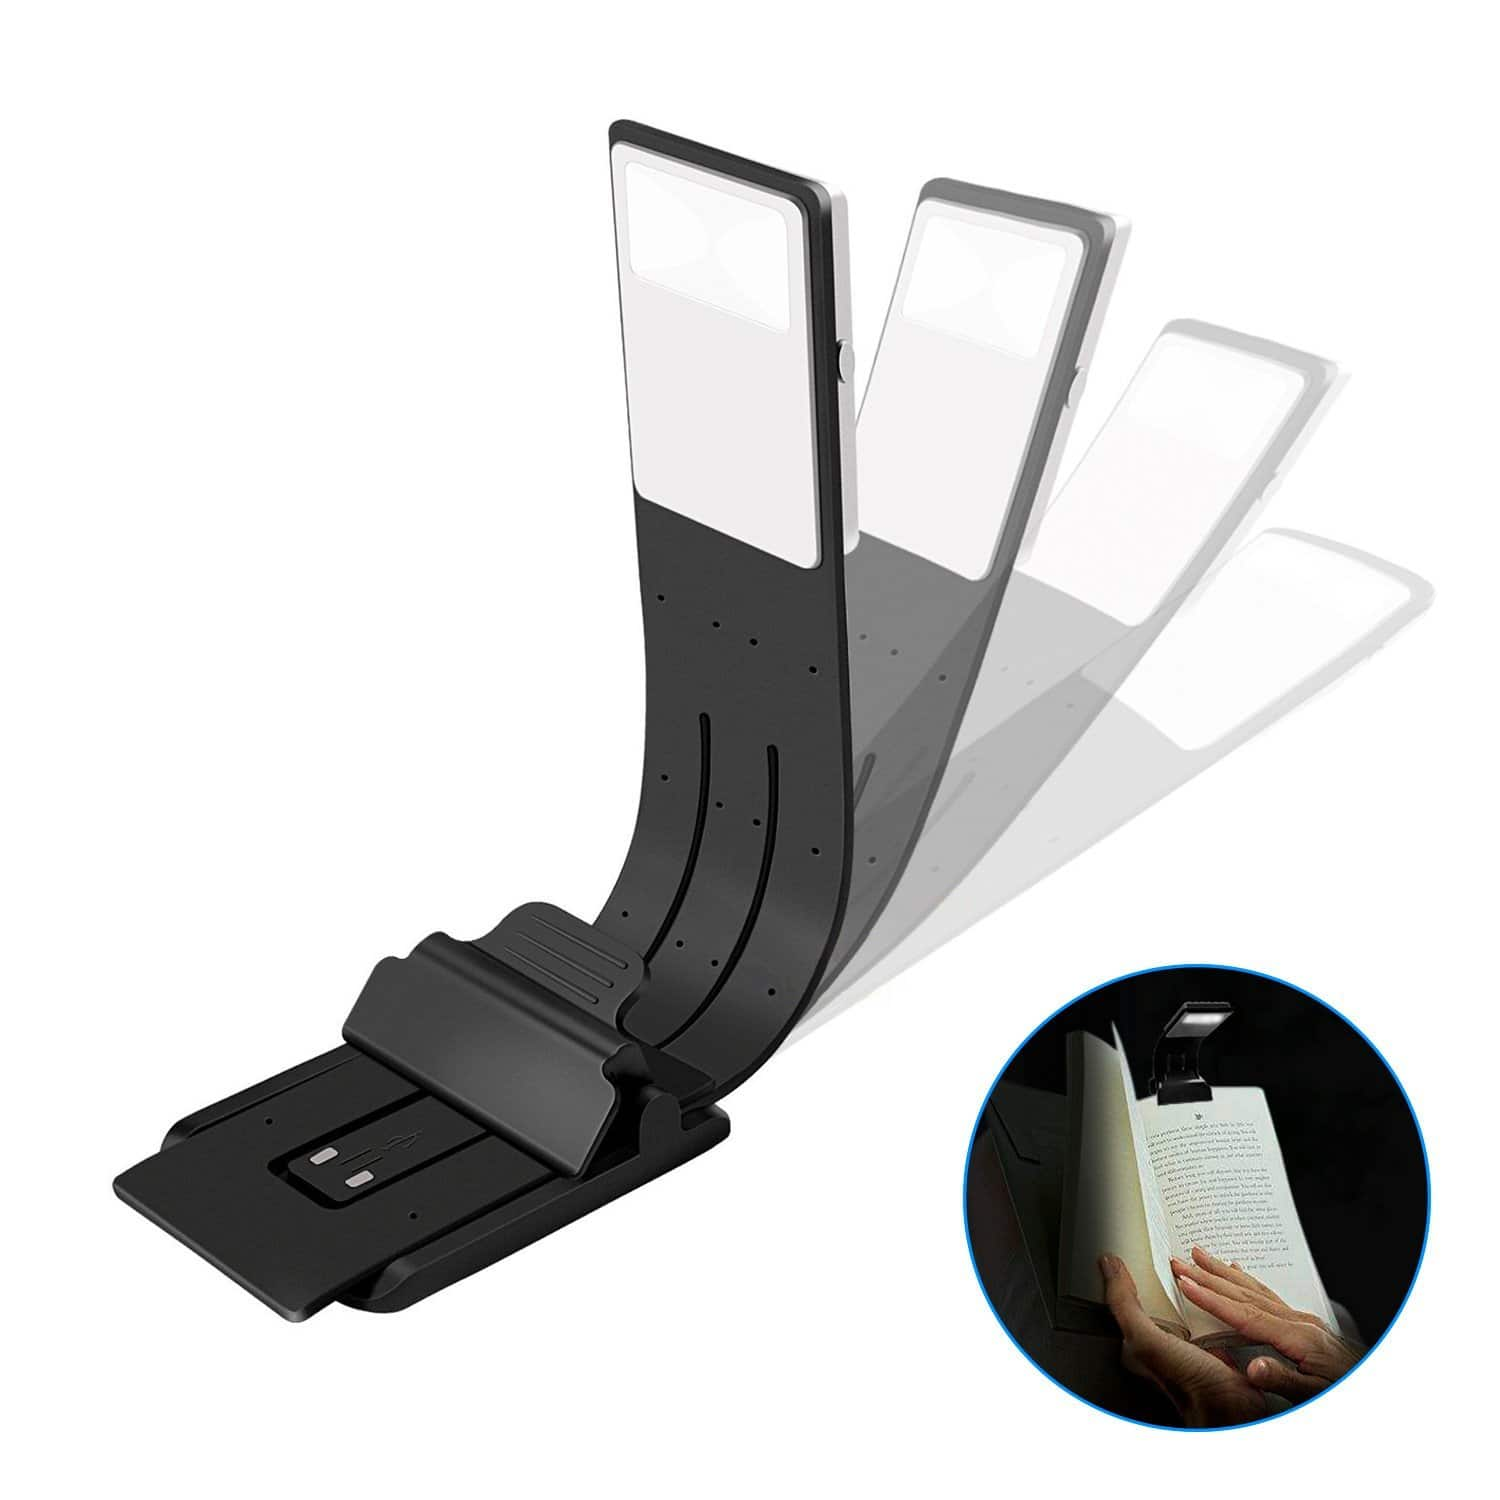 BestFire Book Light, Clip On USB Rechargeable Bed Reading Lights, 4 Level Brightness LED Bookmark for Book, Kindle, iPad (Black) $5.99